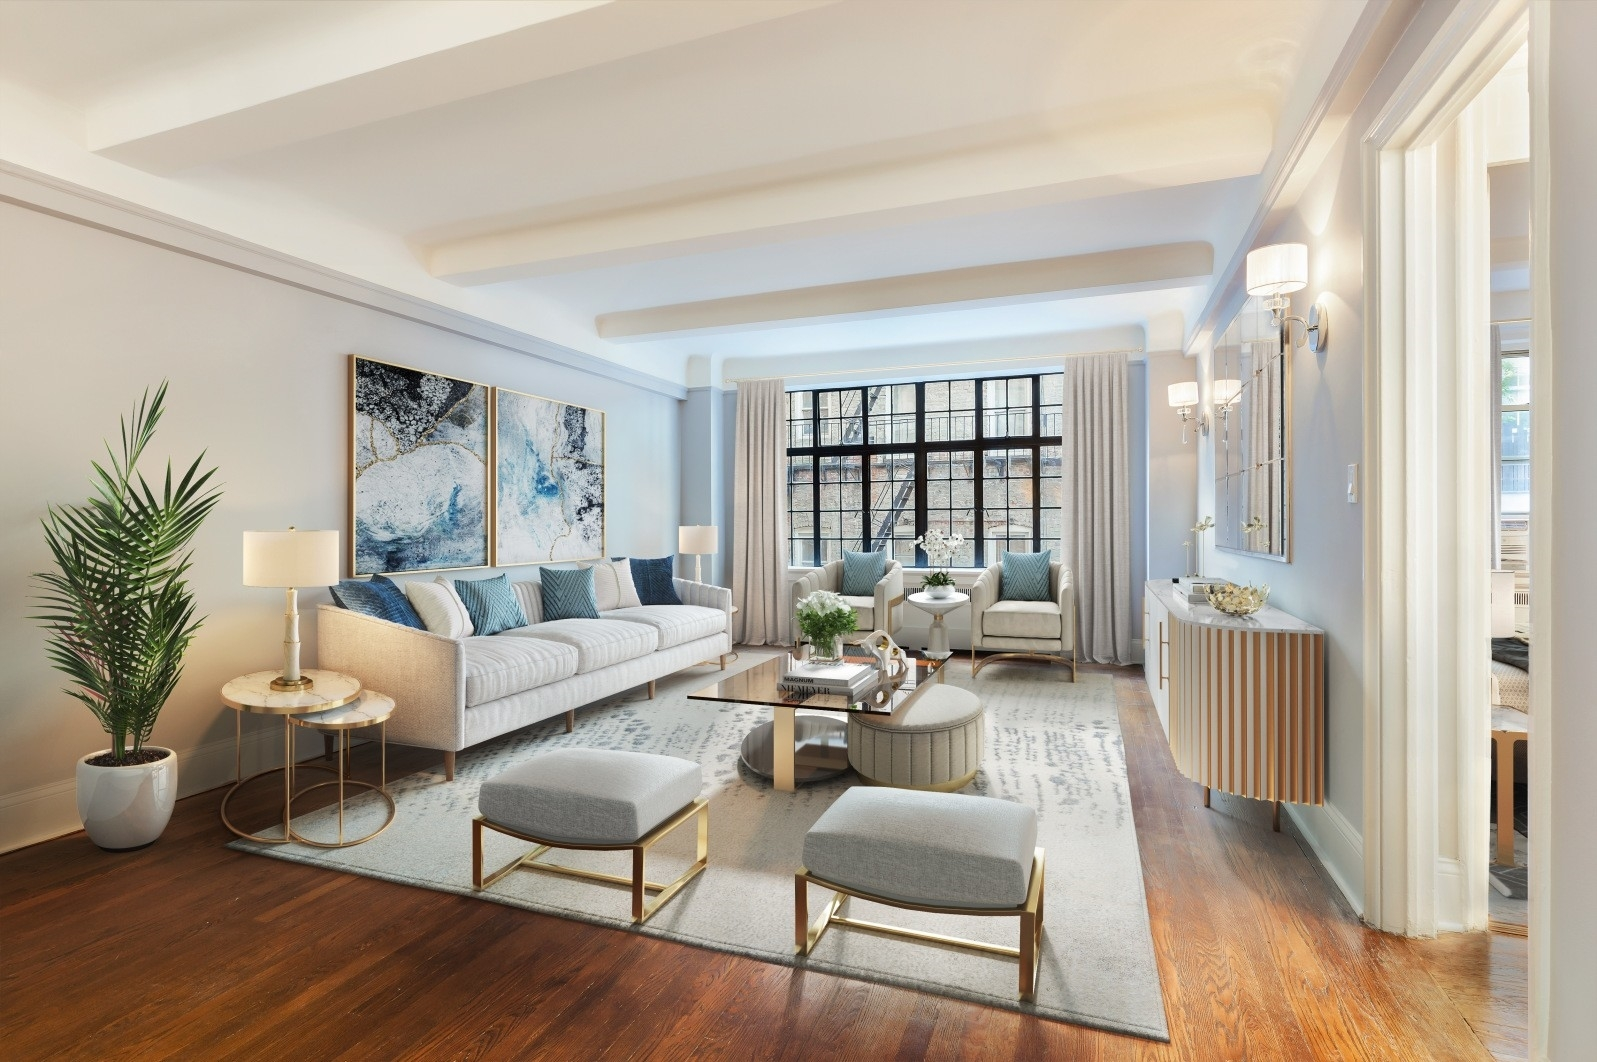 Property at GRAMERCY OWNERS LTD, 44 Gramercy Park North, 4D Gramercy Park, New York, NY 10010